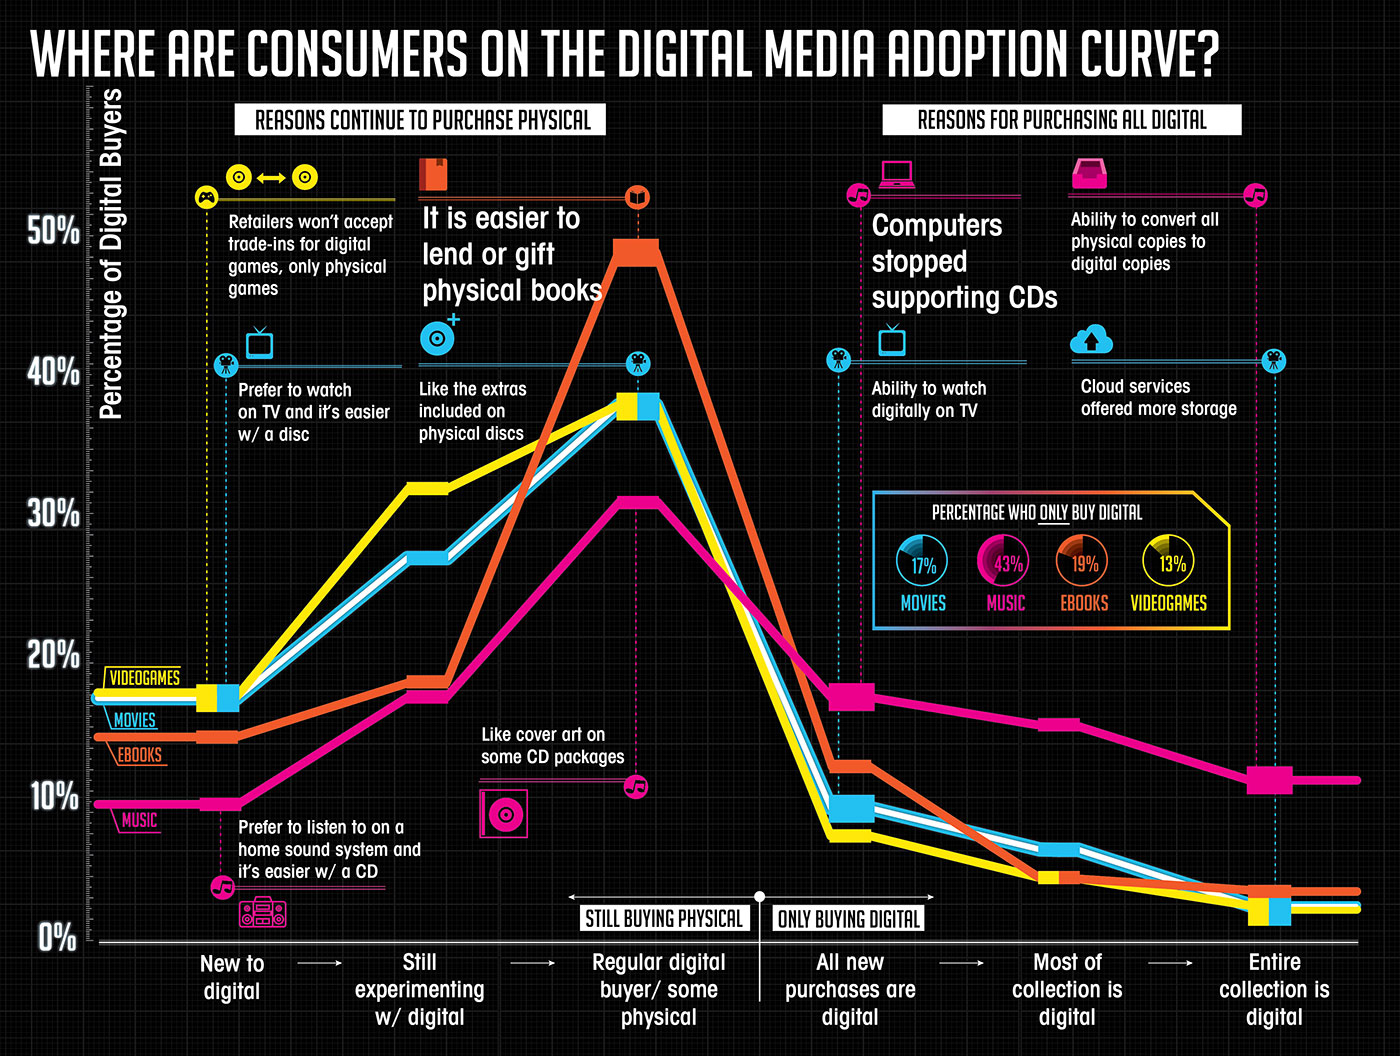 Where are consumers on the digital media adoption curve?